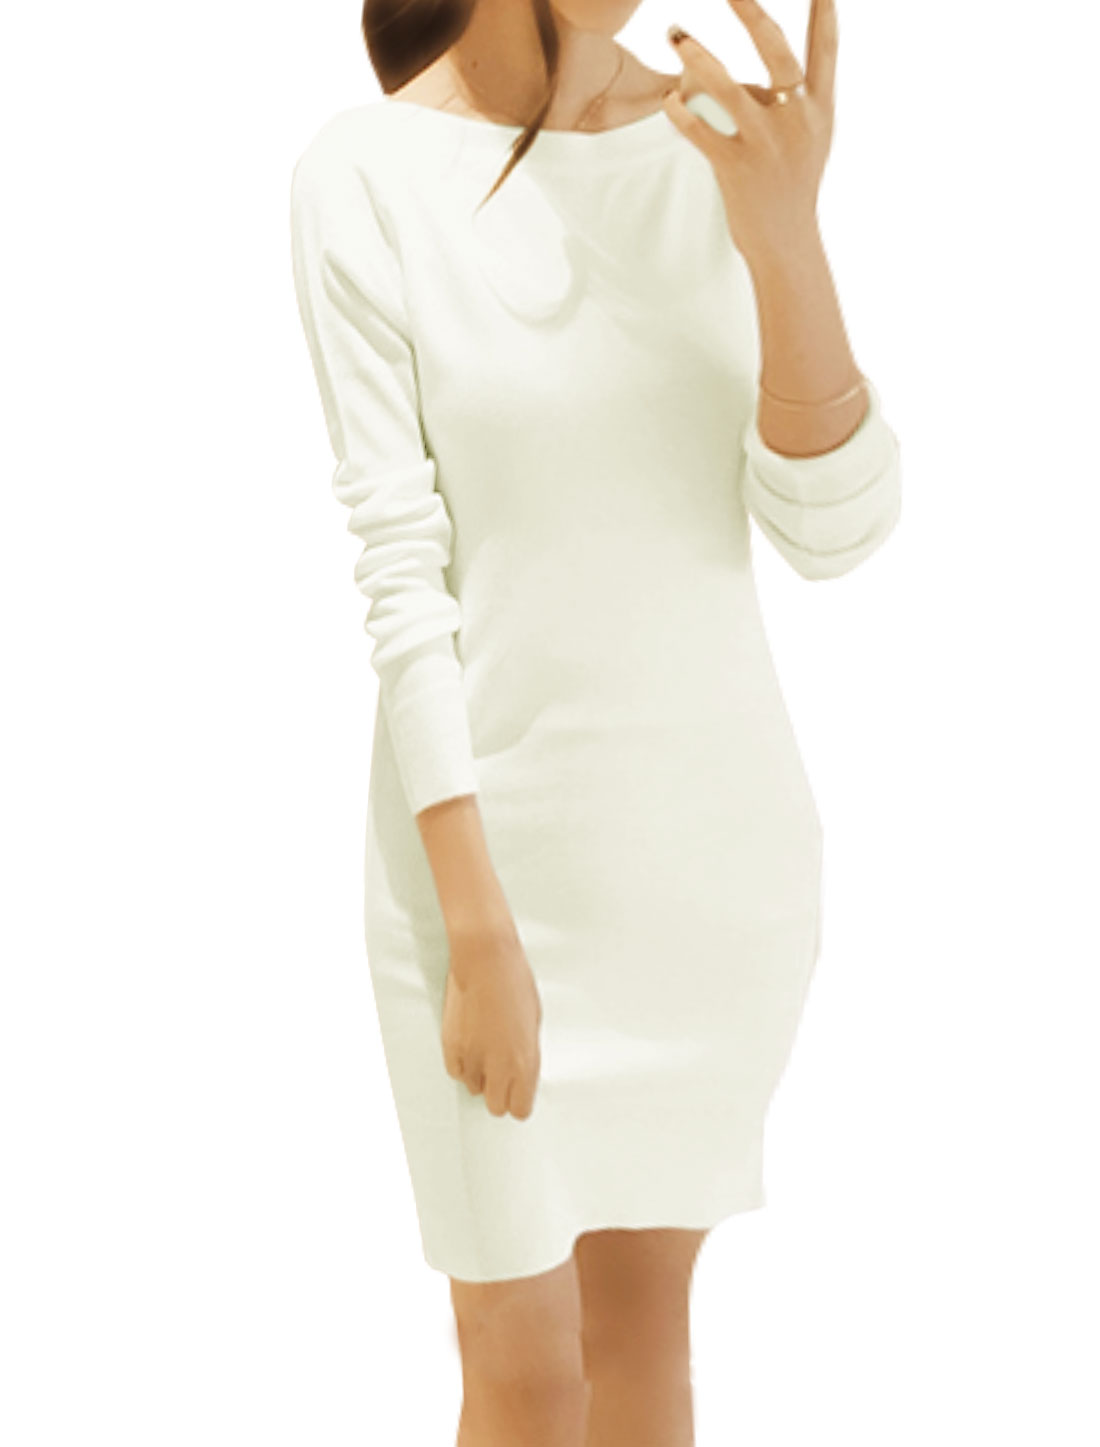 Women Boat Neck Long Sleeves Knitted Mini Sheath Dress White XS